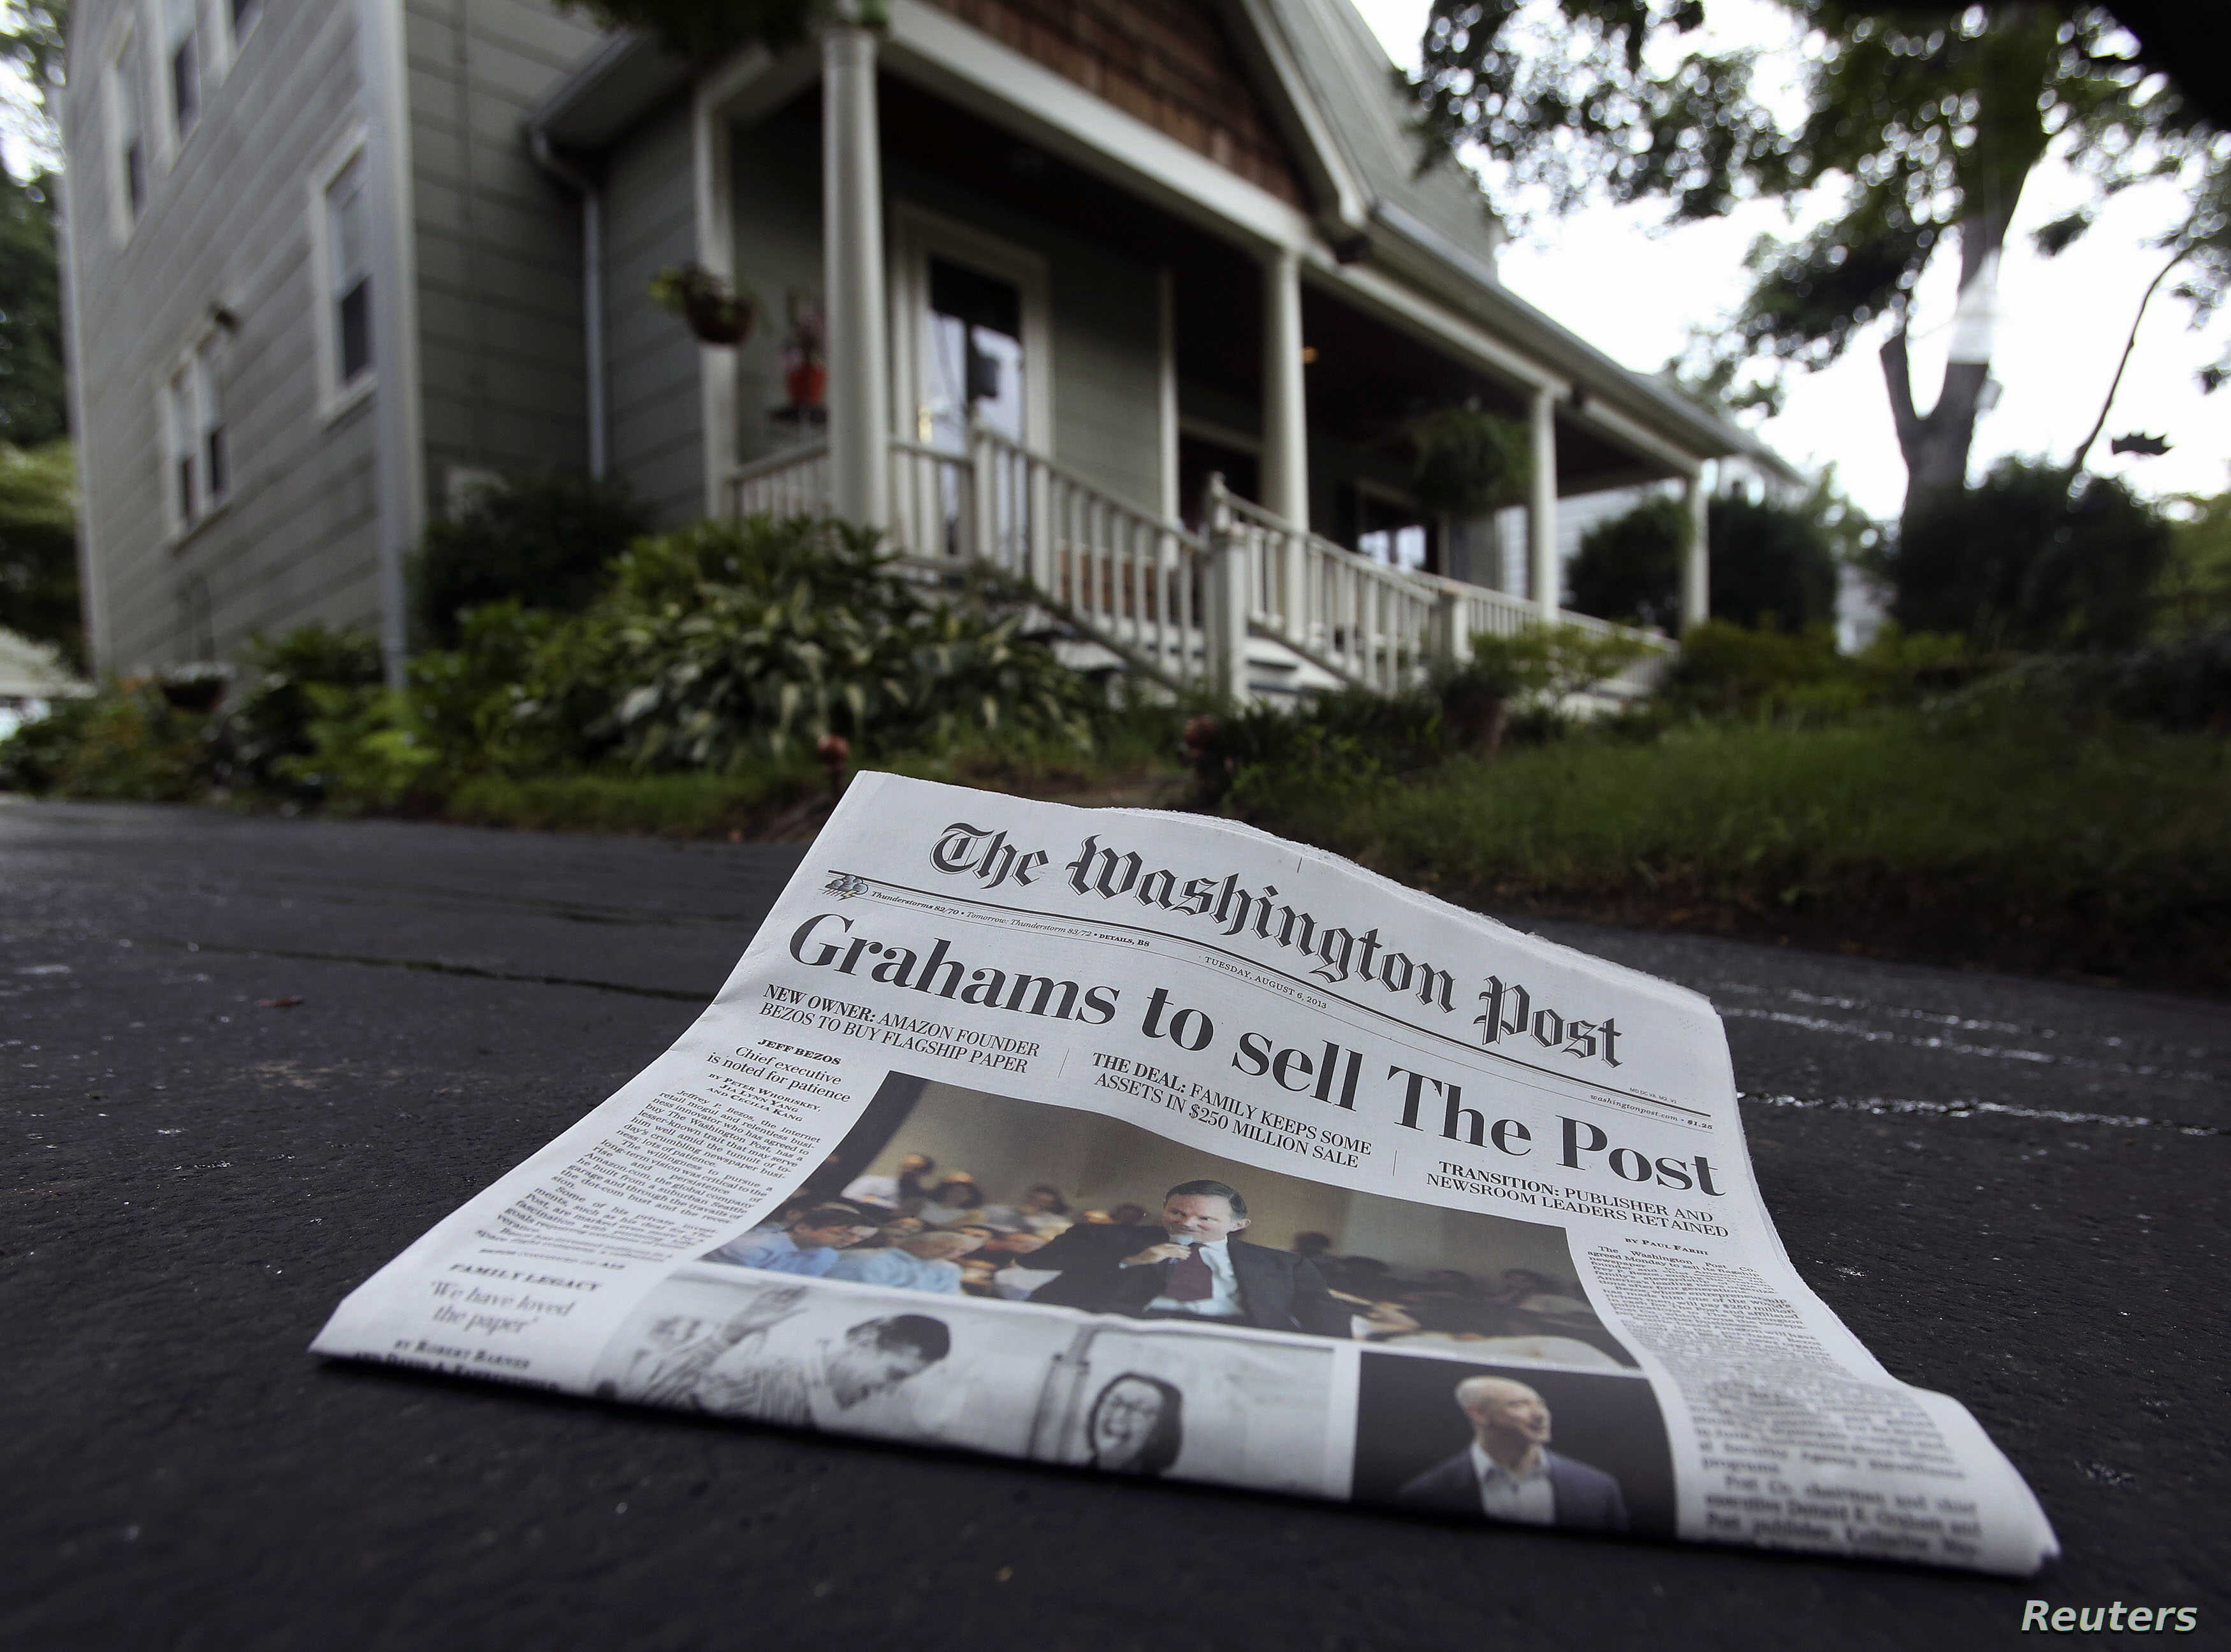 A morning edition of the Washington Post lies in a driveway after delivery in this photo illustration taken in Silver Spring, Maryland, August 6, 2013.